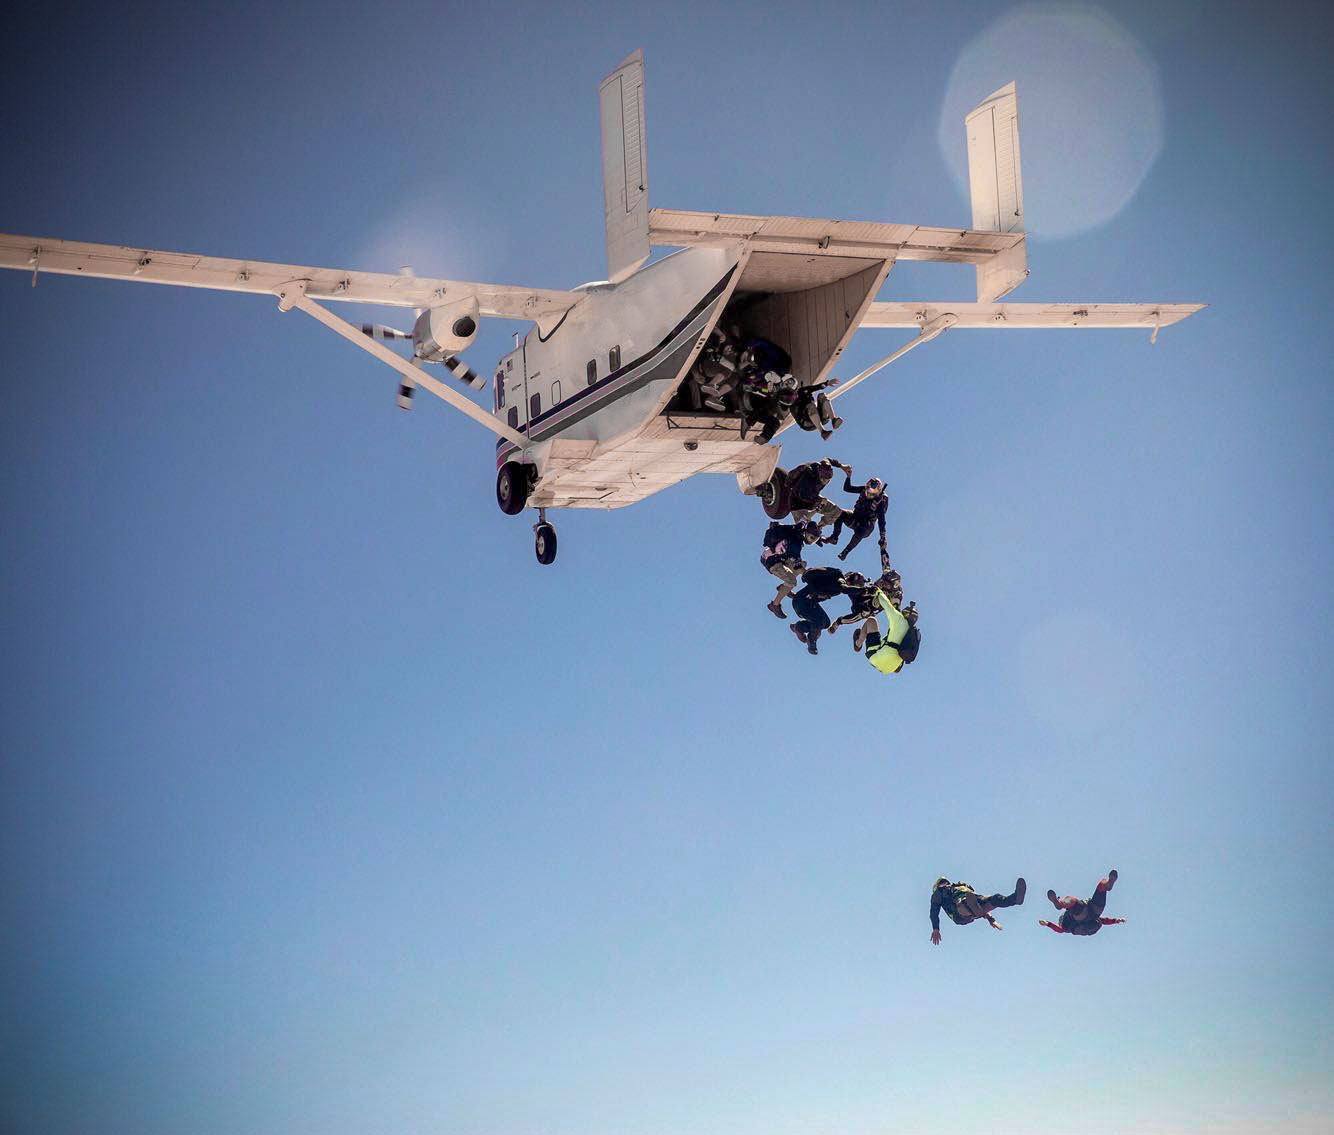 Skyvan Coming to Skydive Ontario